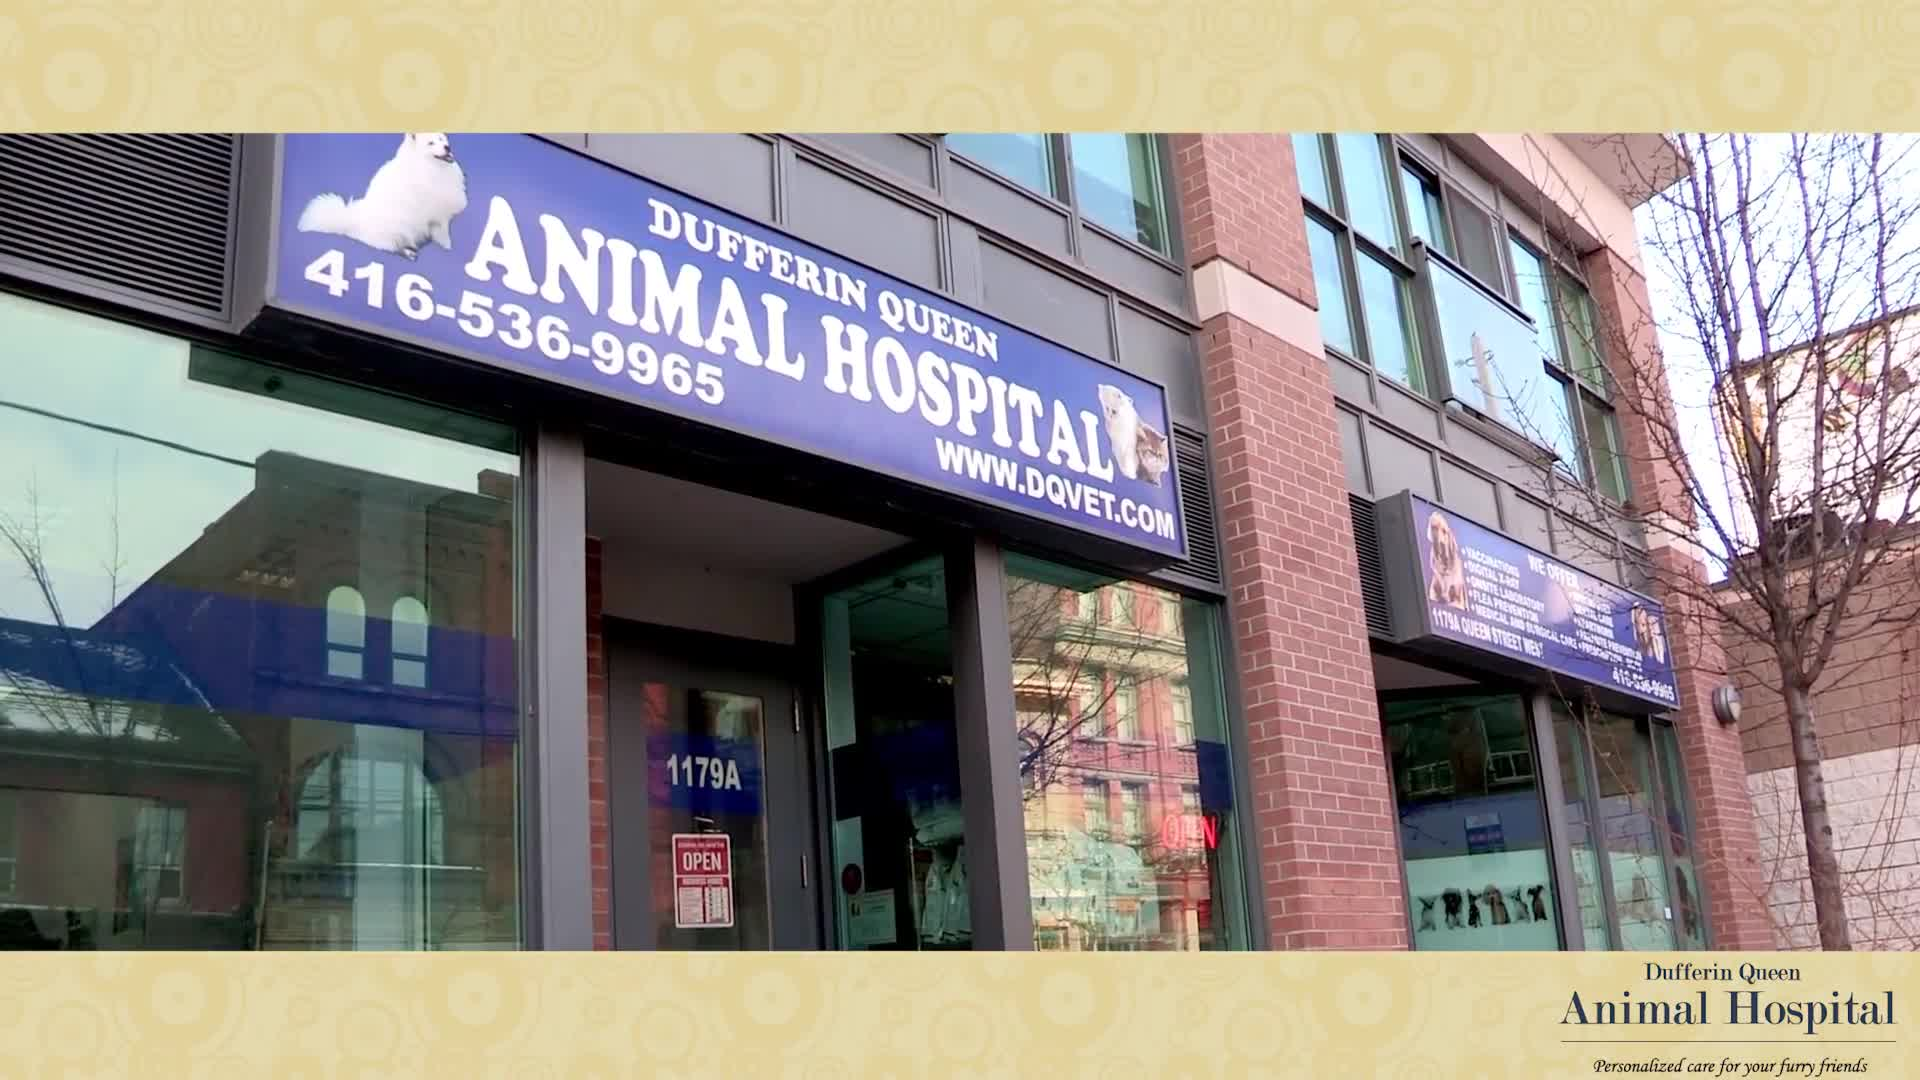 video Dufferin Queen Animal Hospital